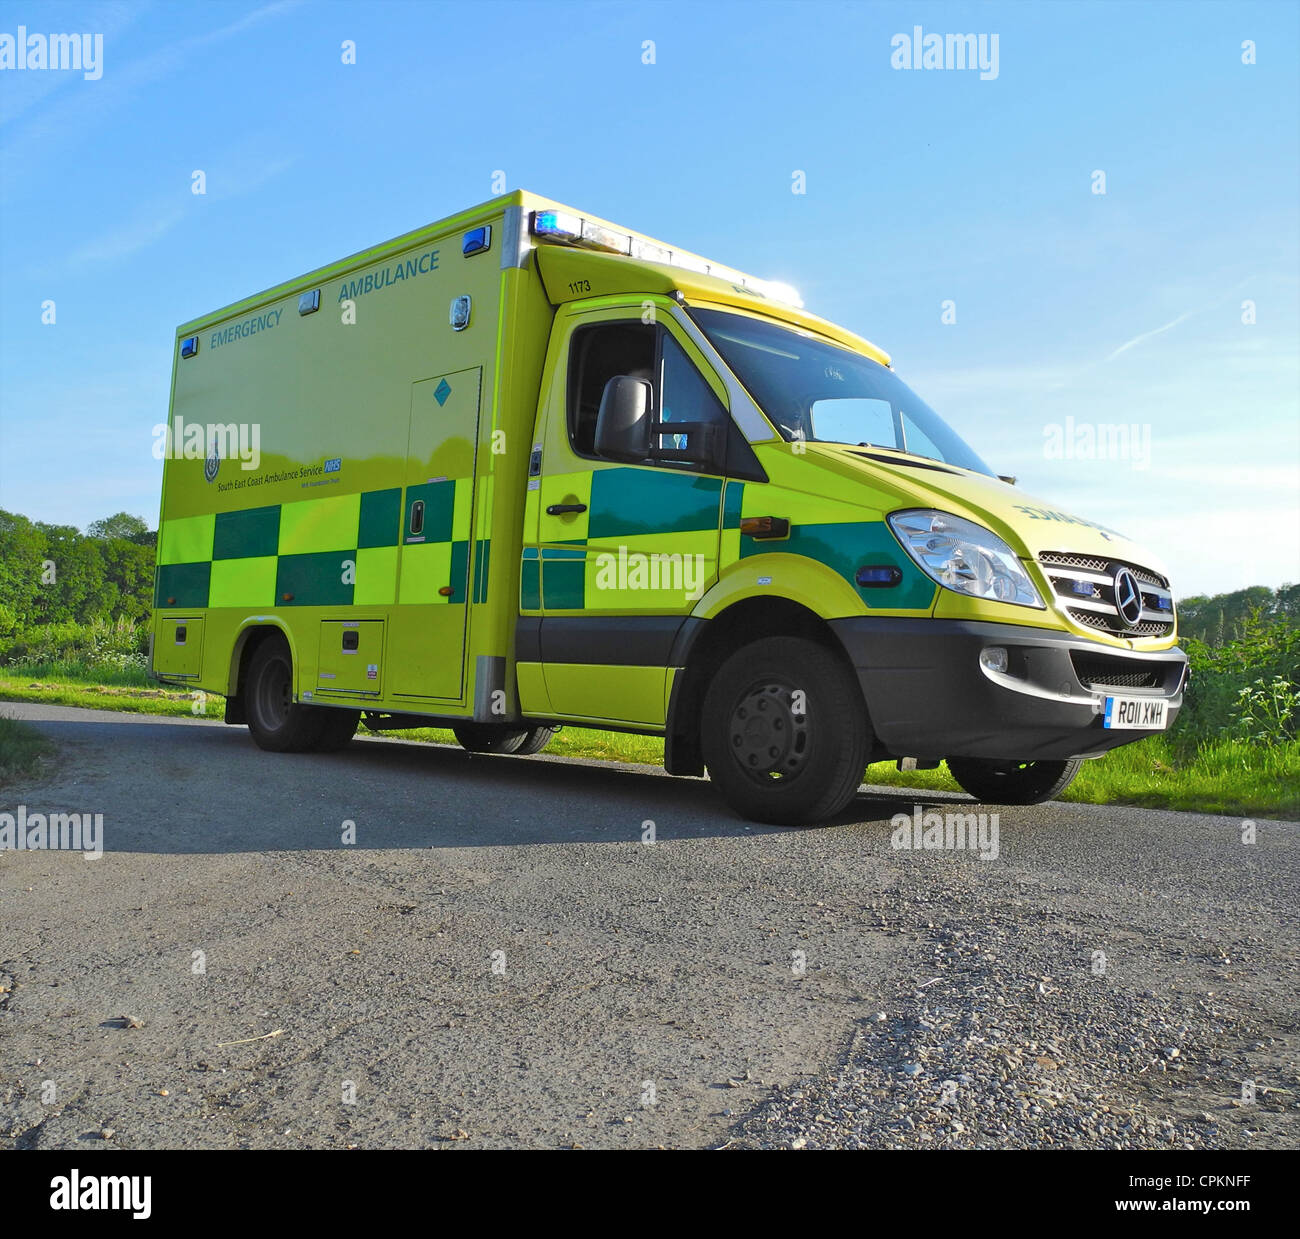 An Emergency Ambulance in a rural setting UK Editorial use only. - Stock Image